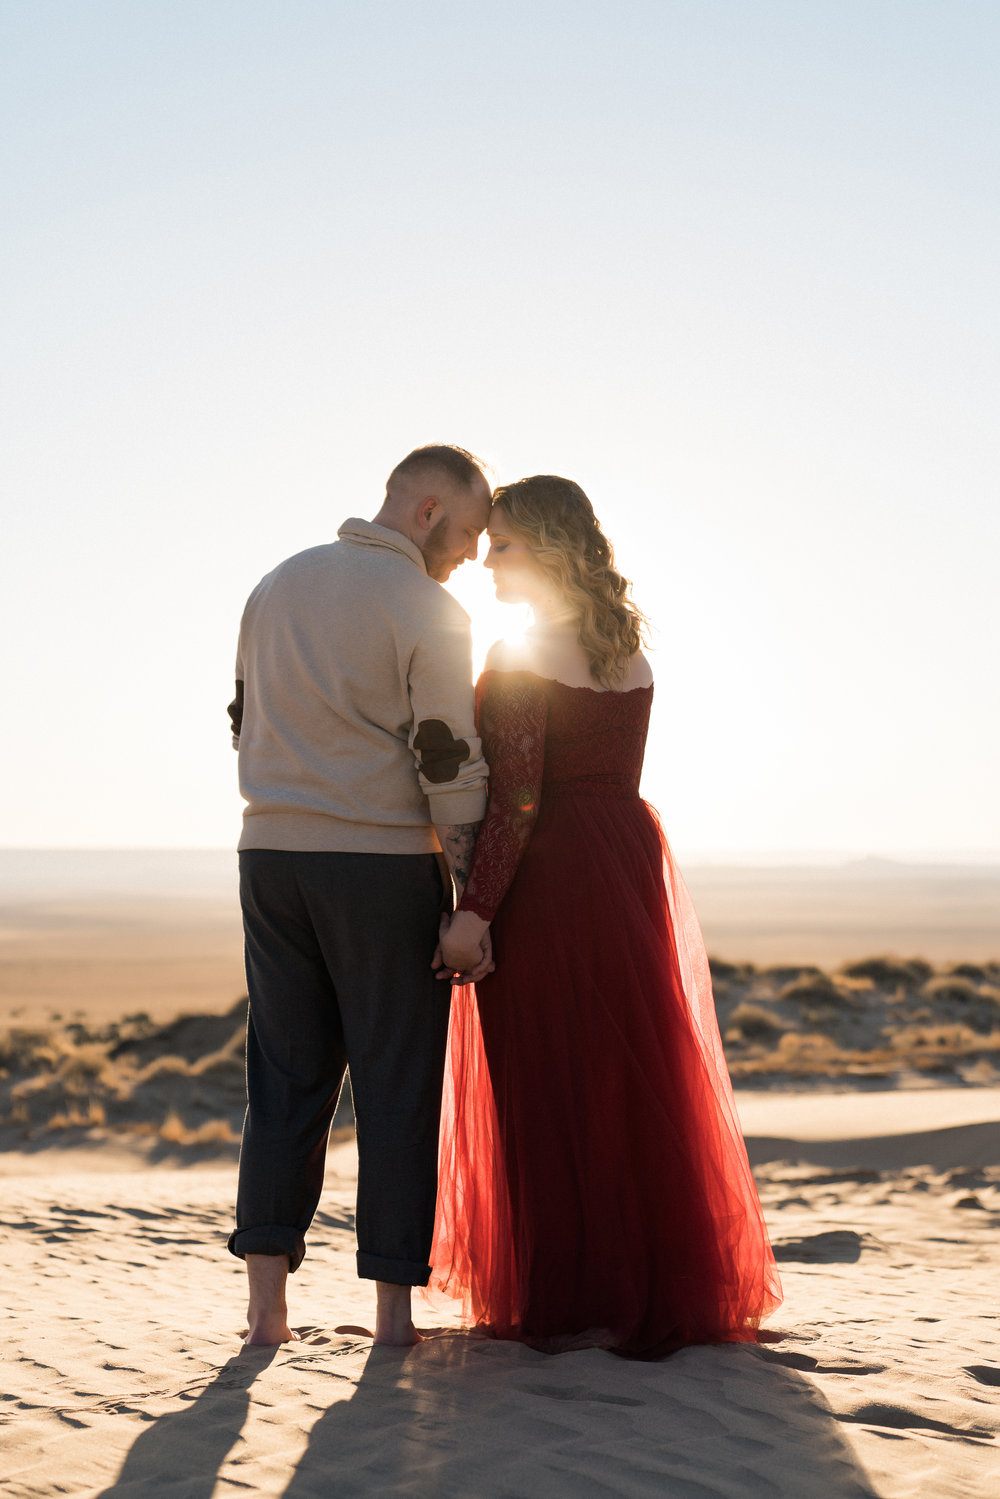 NewMexico-Sand-Dunes-Engagement-Carissa-and-Ben-1159.jpg